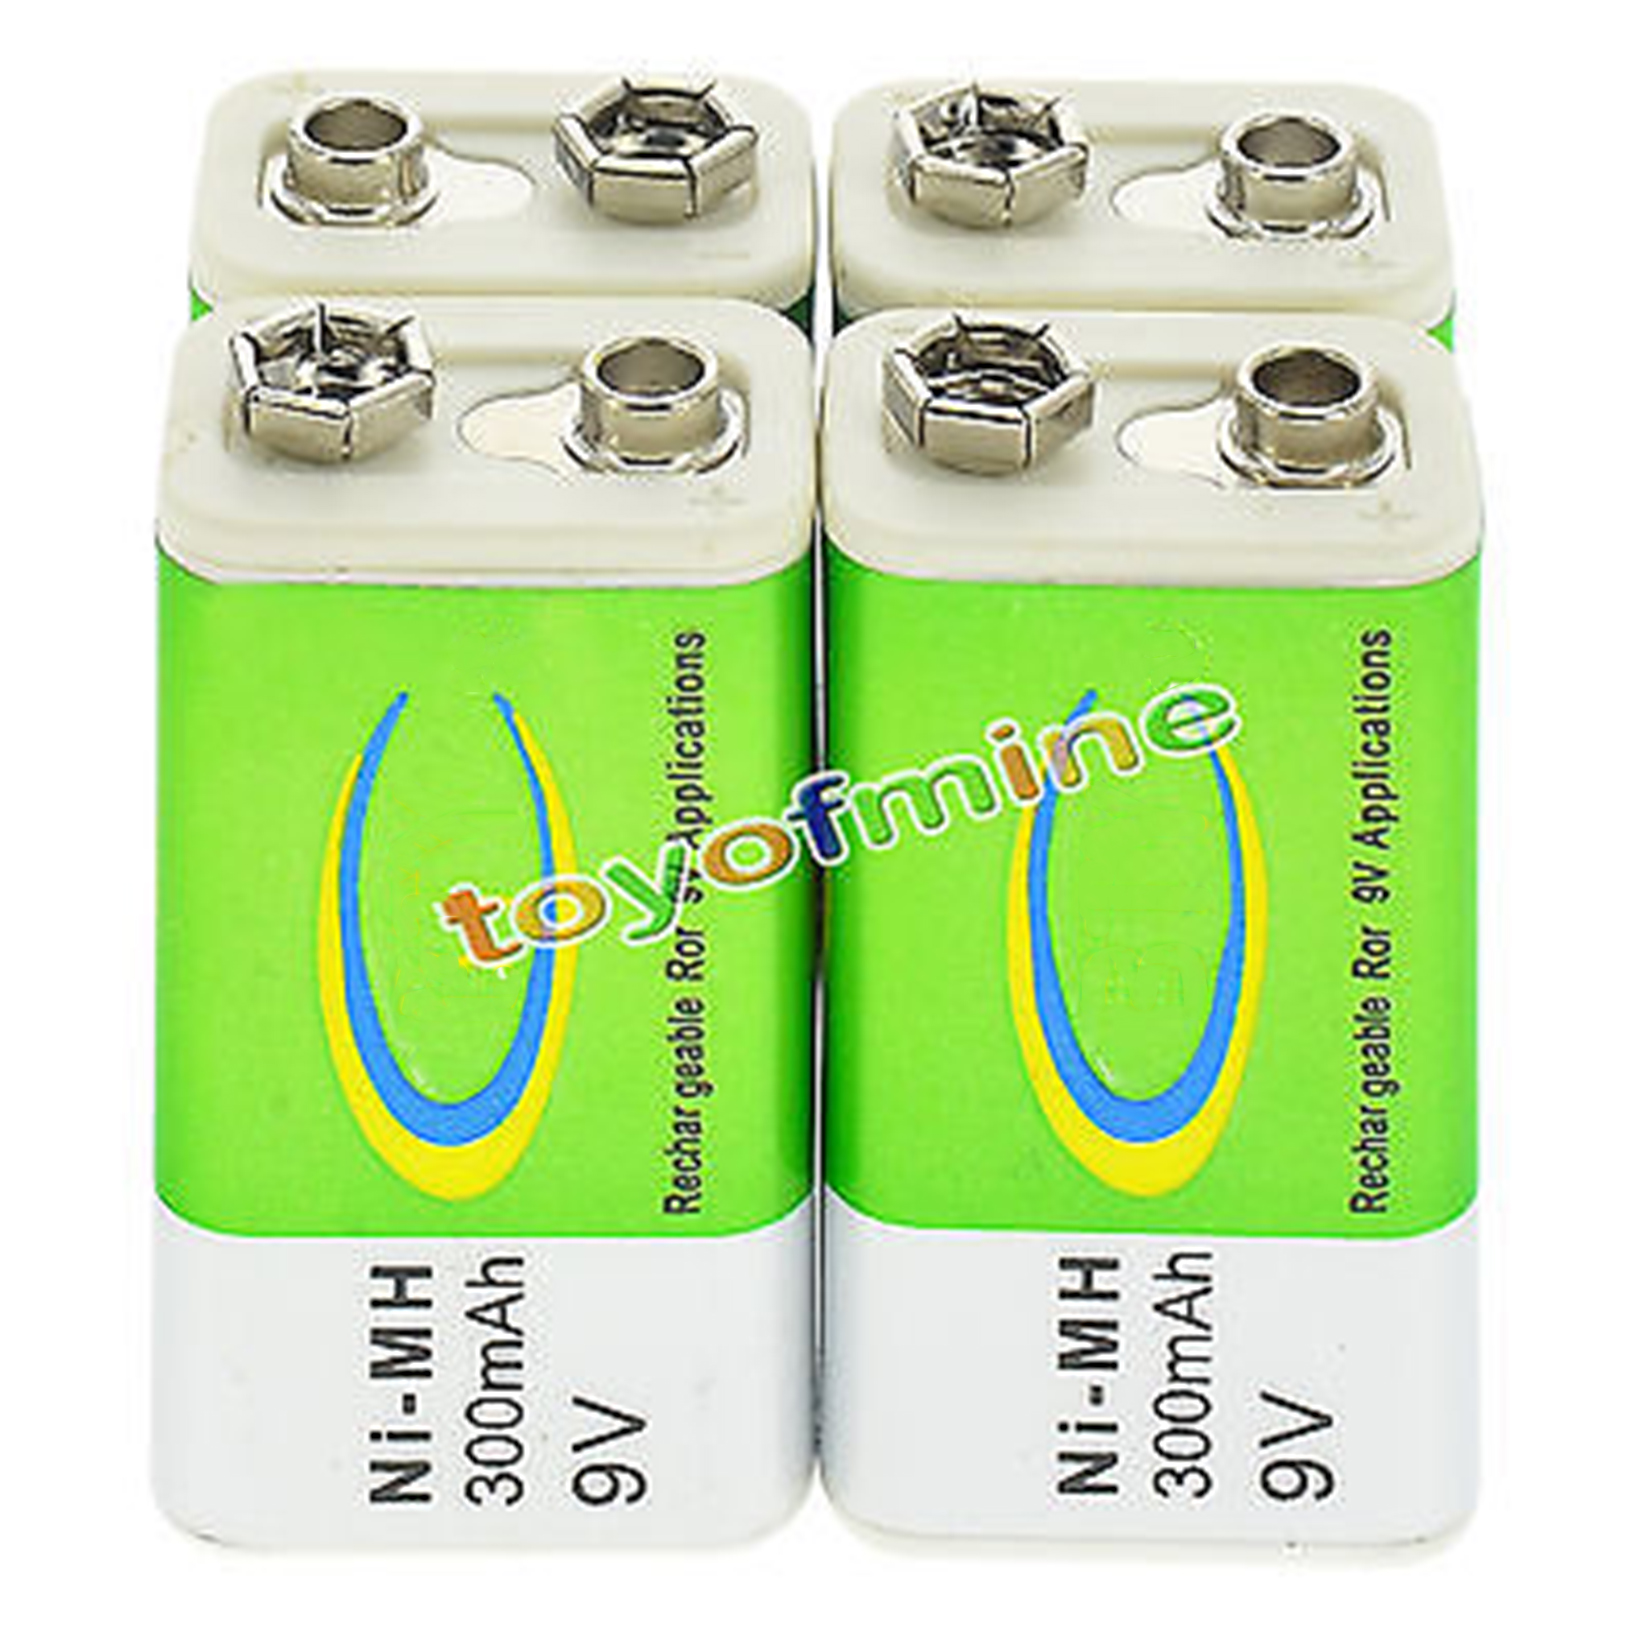 1-24pcs/sets 9V 9 Volt 300mAh Green Ni-Mh Rechargeable Battery for Electronic Smoke Guitar1-24pcs/sets 9V 9 Volt 300mAh Green Ni-Mh Rechargeable Battery for Electronic Smoke Guitar